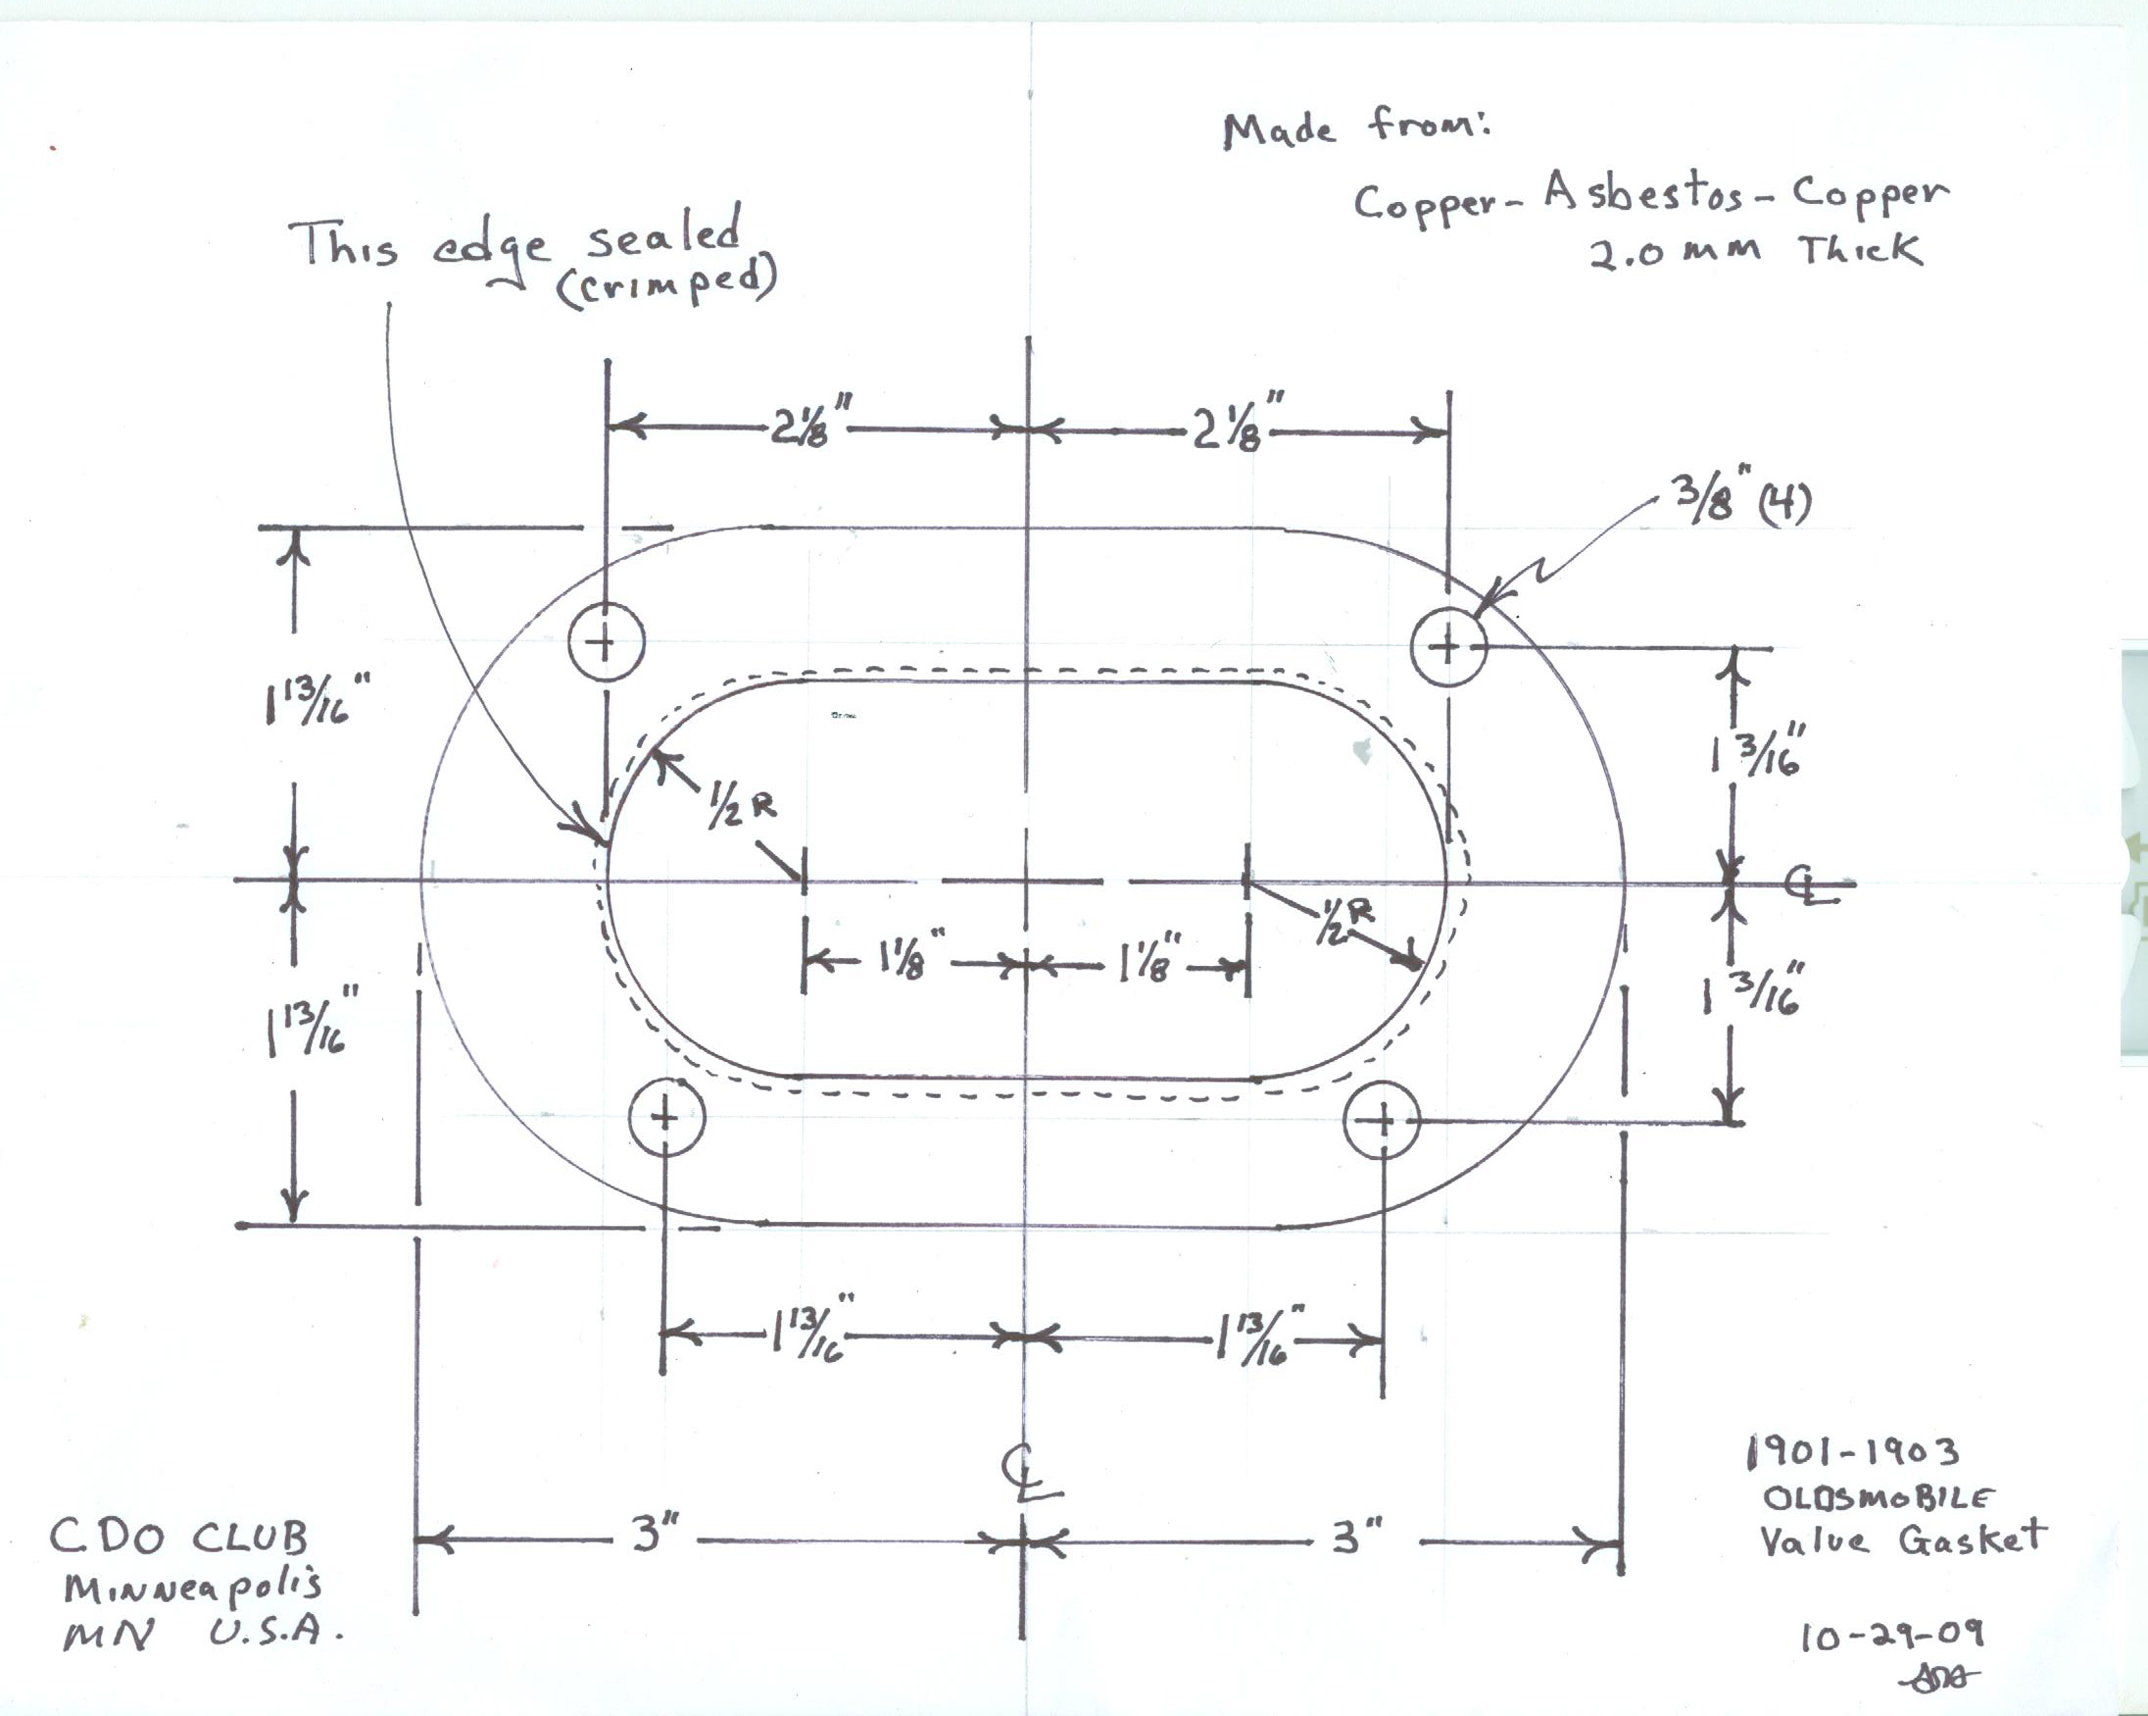 of the valve cover gasket and a scan with dimensions for the head  gasket in order to order enough of these gaskets to keep these machines  running